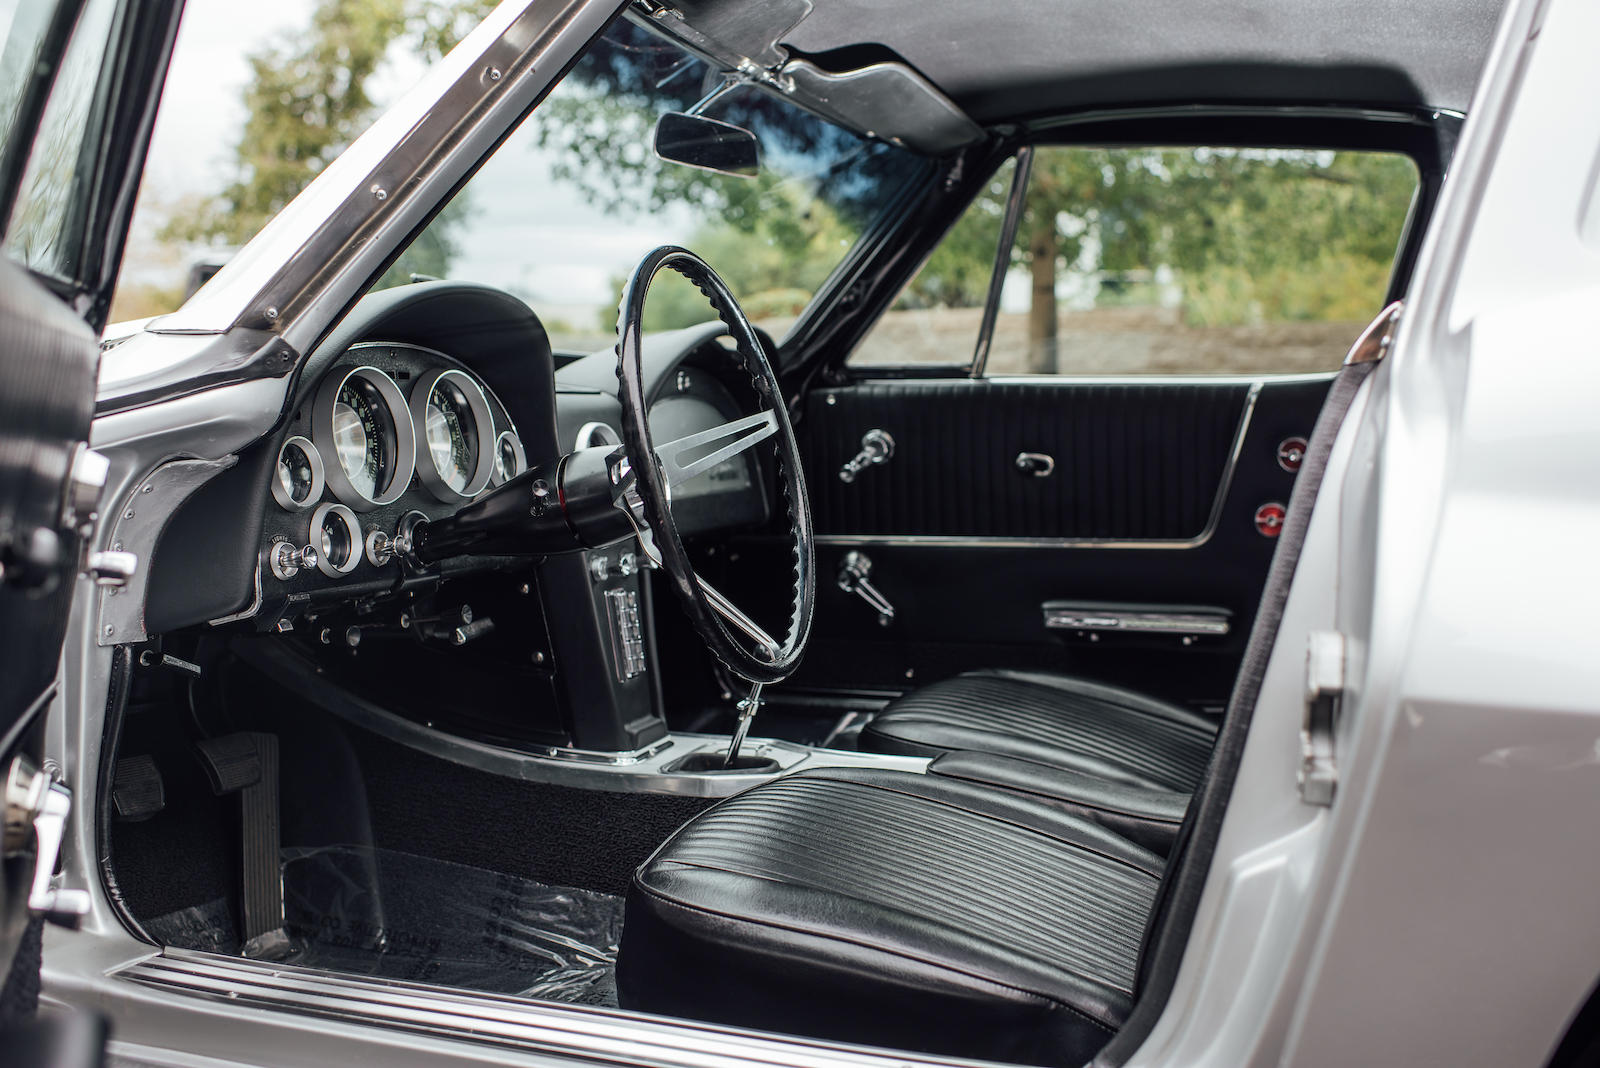 1963 Chevrolet Corvette driver interior